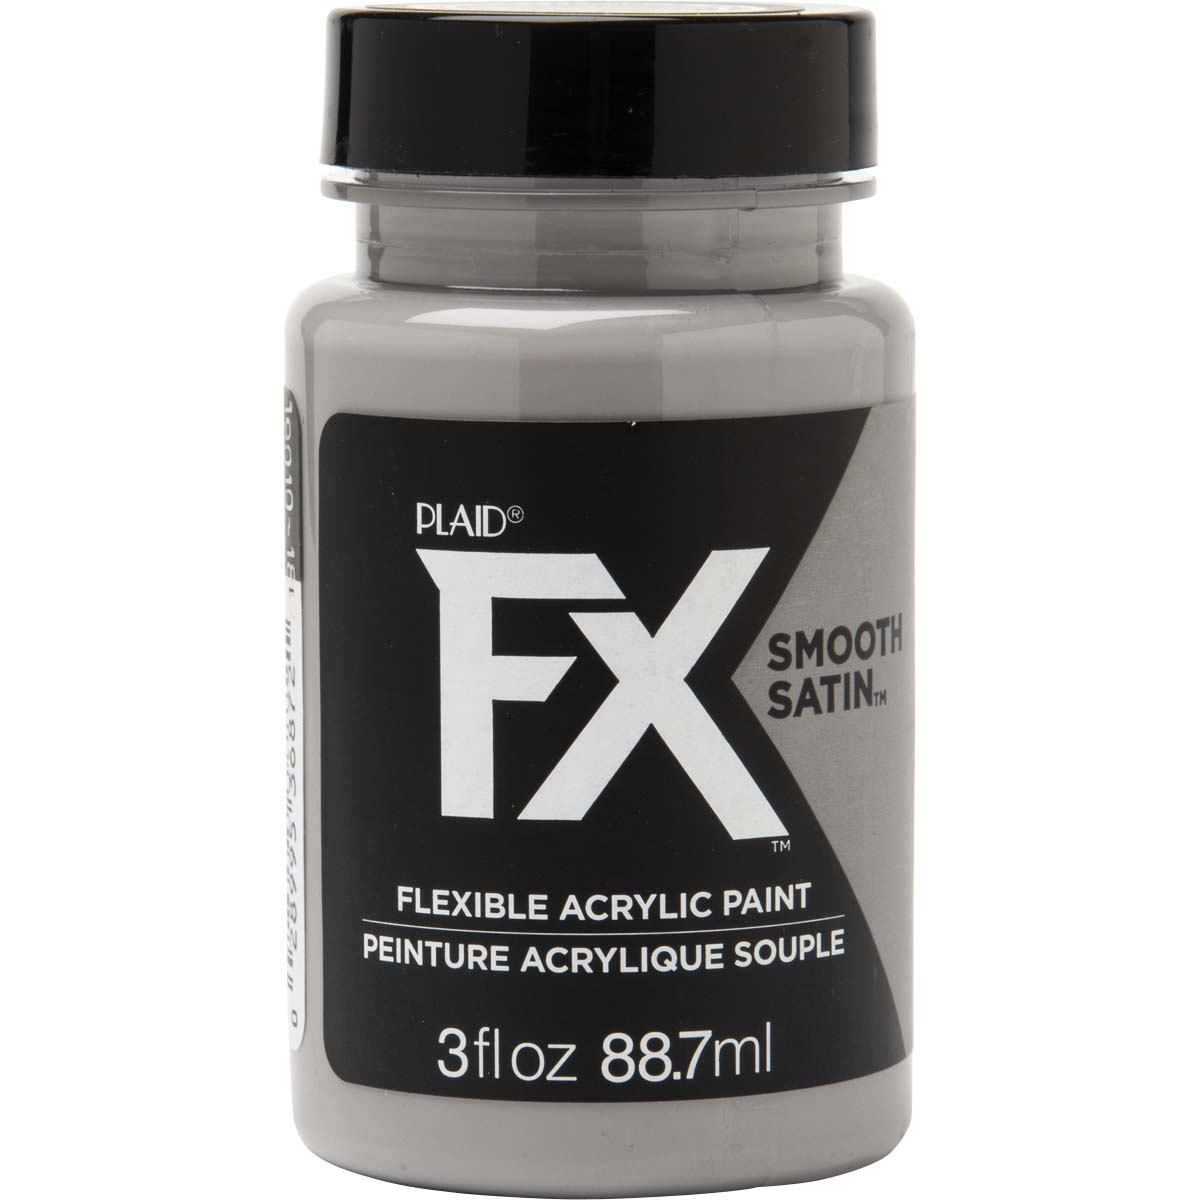 PlaidFX Smooth Satin Flexible Acrylic Paint - Doomsday, 3 oz. - 36872